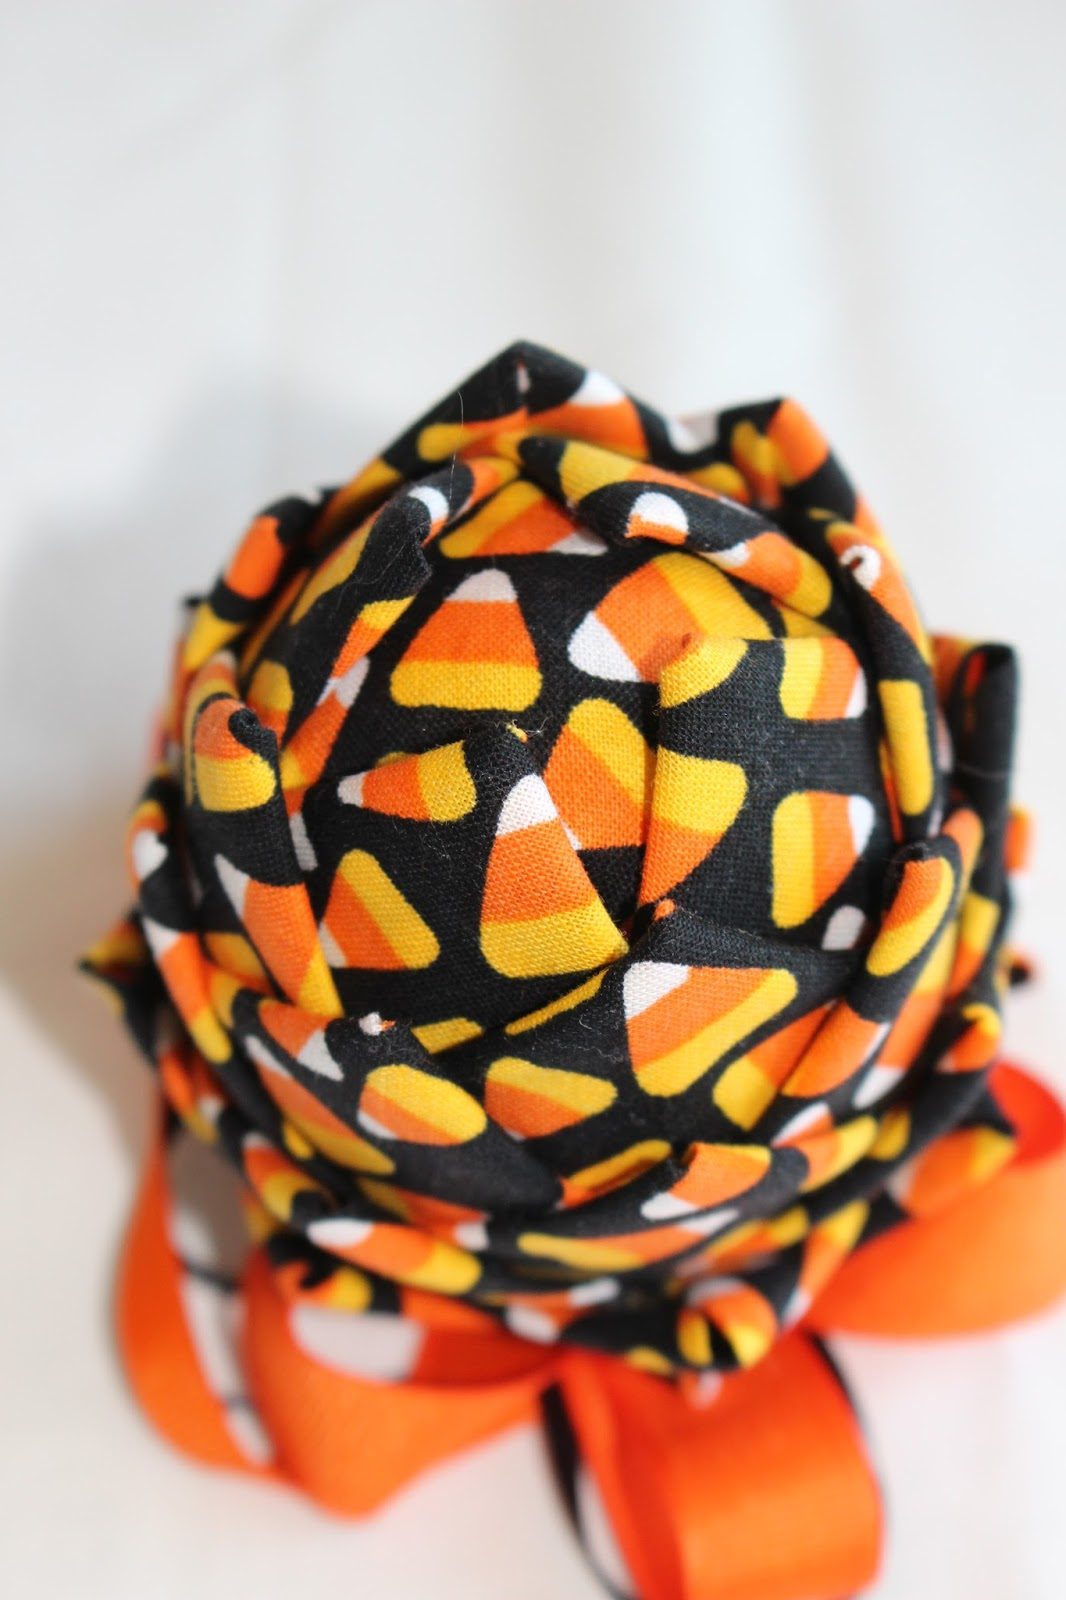 fabric candy corn design ribbon black orange status available ready to ship - Christmas Candy Corn